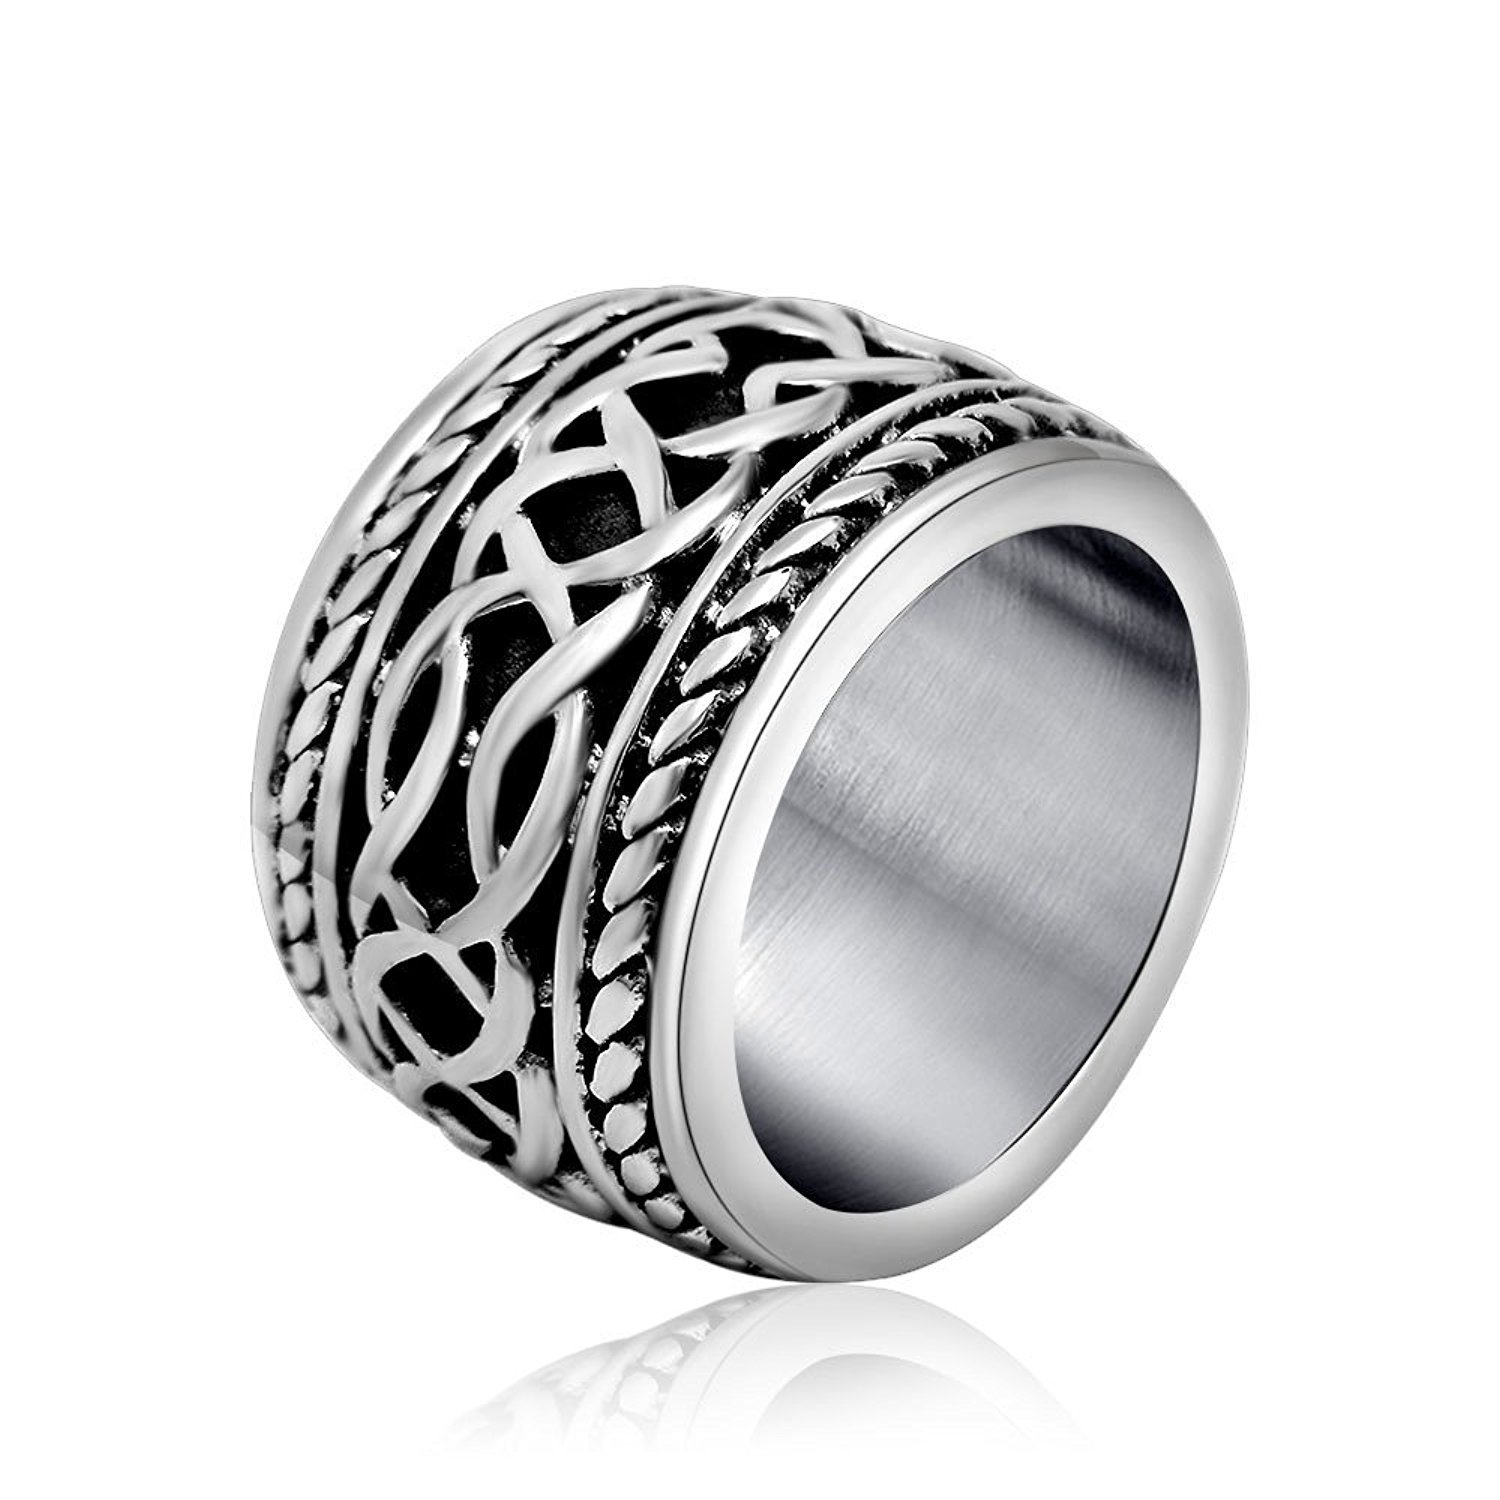 14MM Men's Titanium Stainless Steel Ring Band Cross Retro Style Sizes 5-15 & Hal